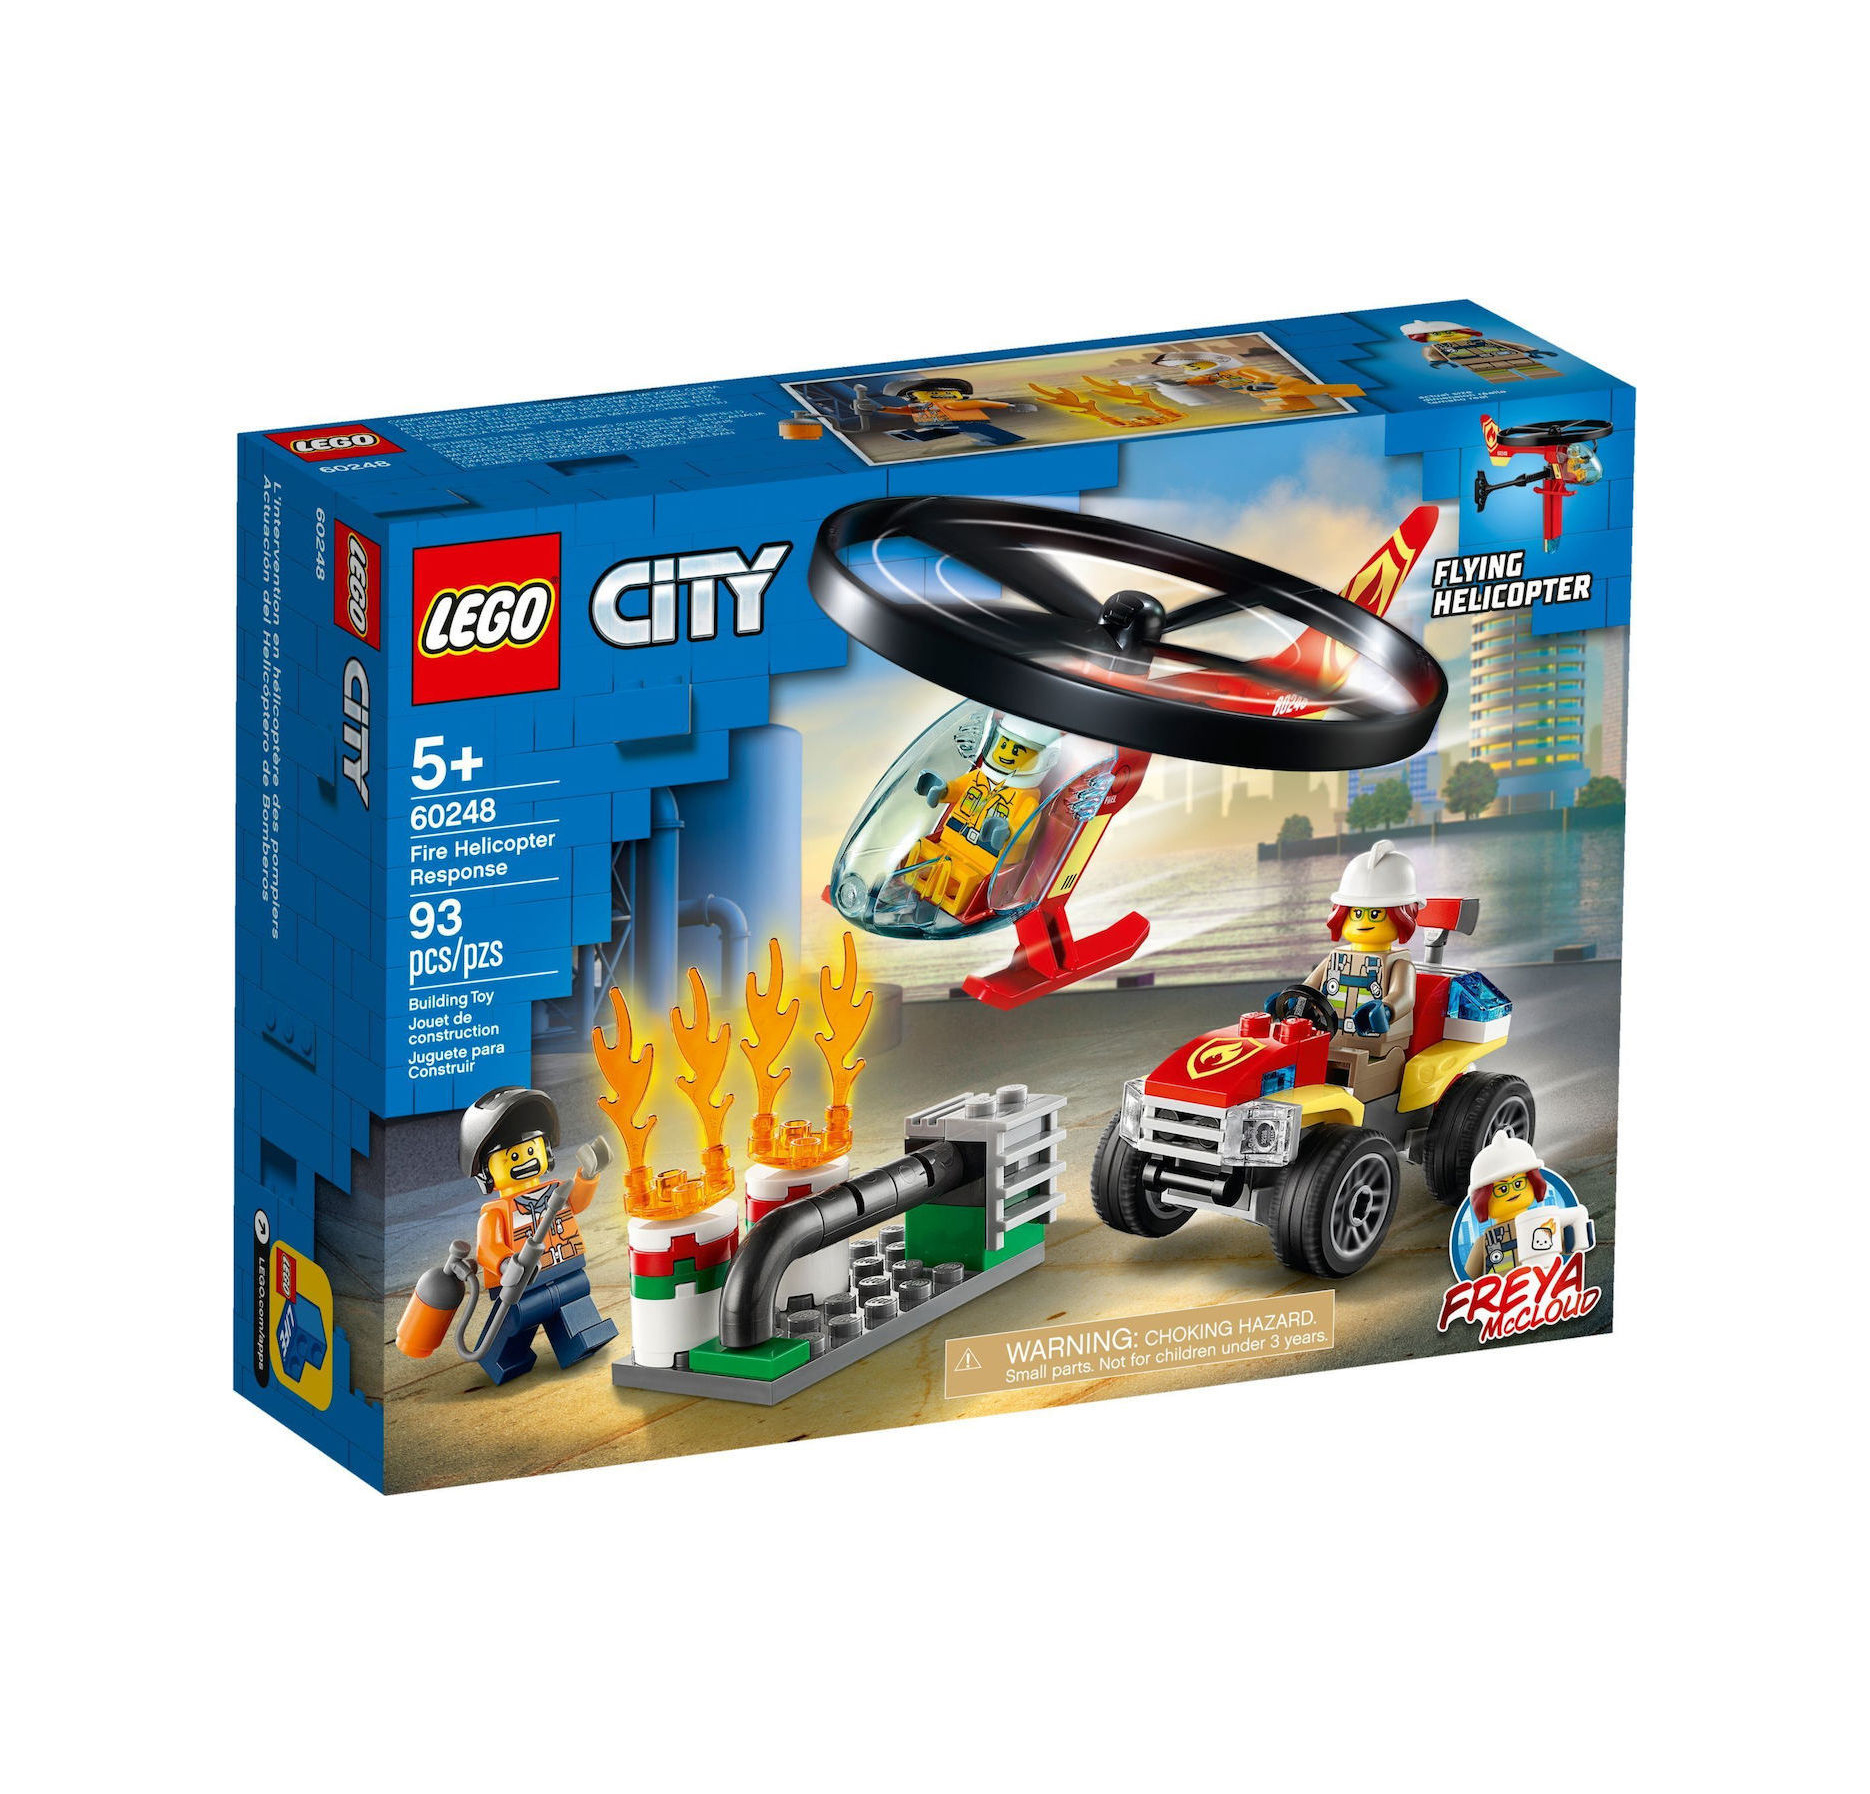 Lego City: Helicopter Fire Response 60248